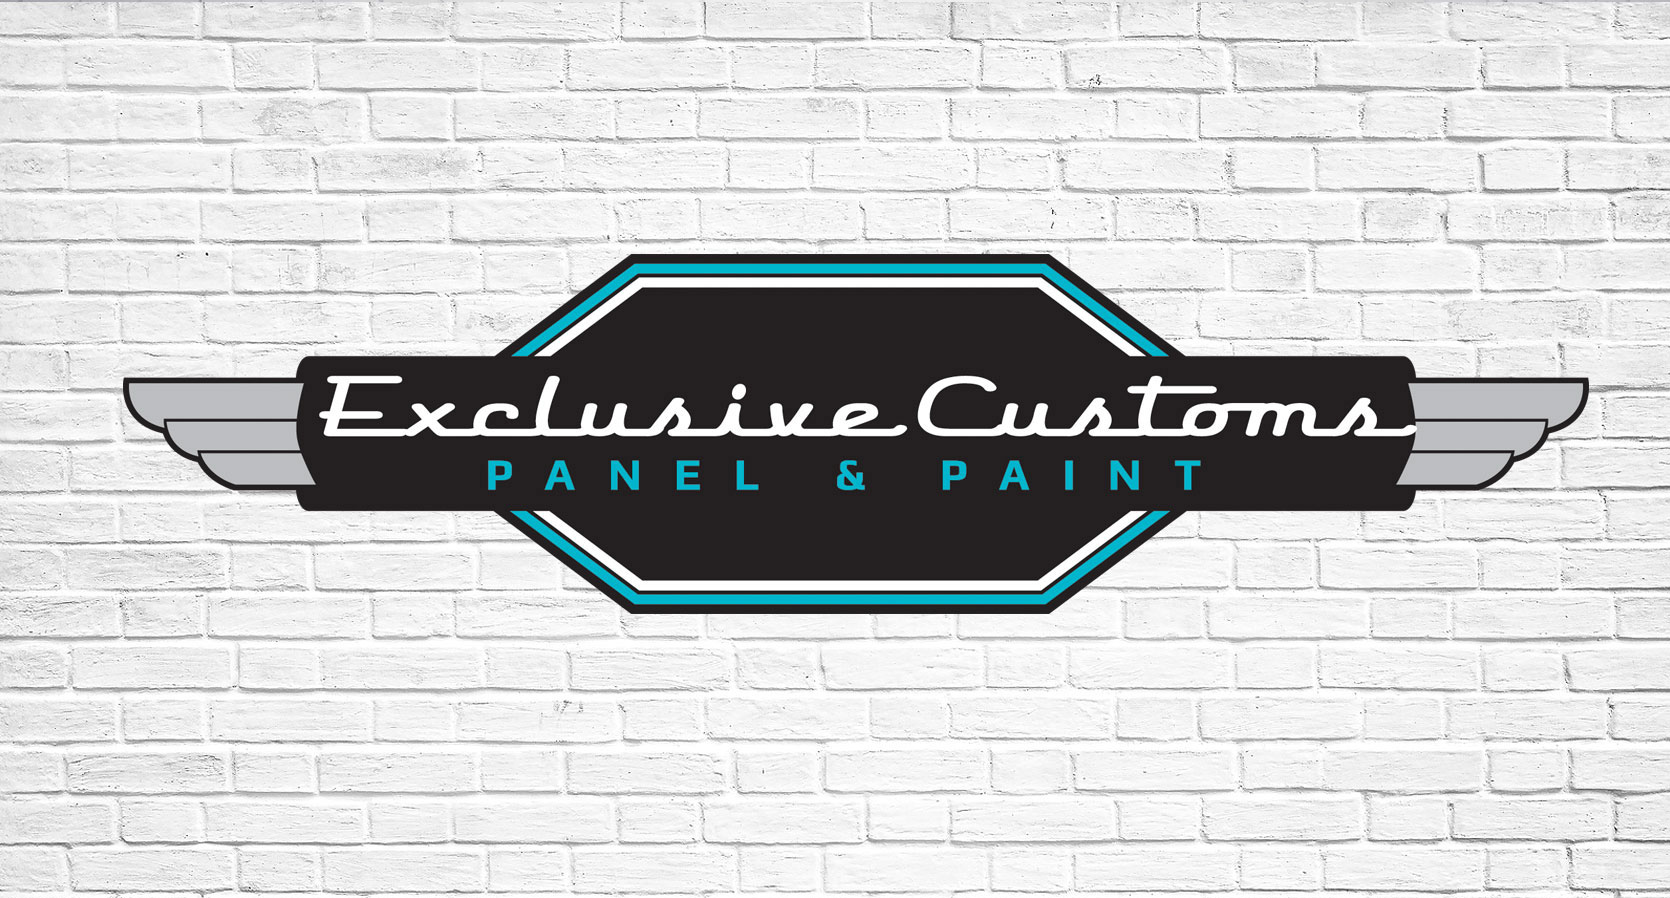 Exclusive Customs